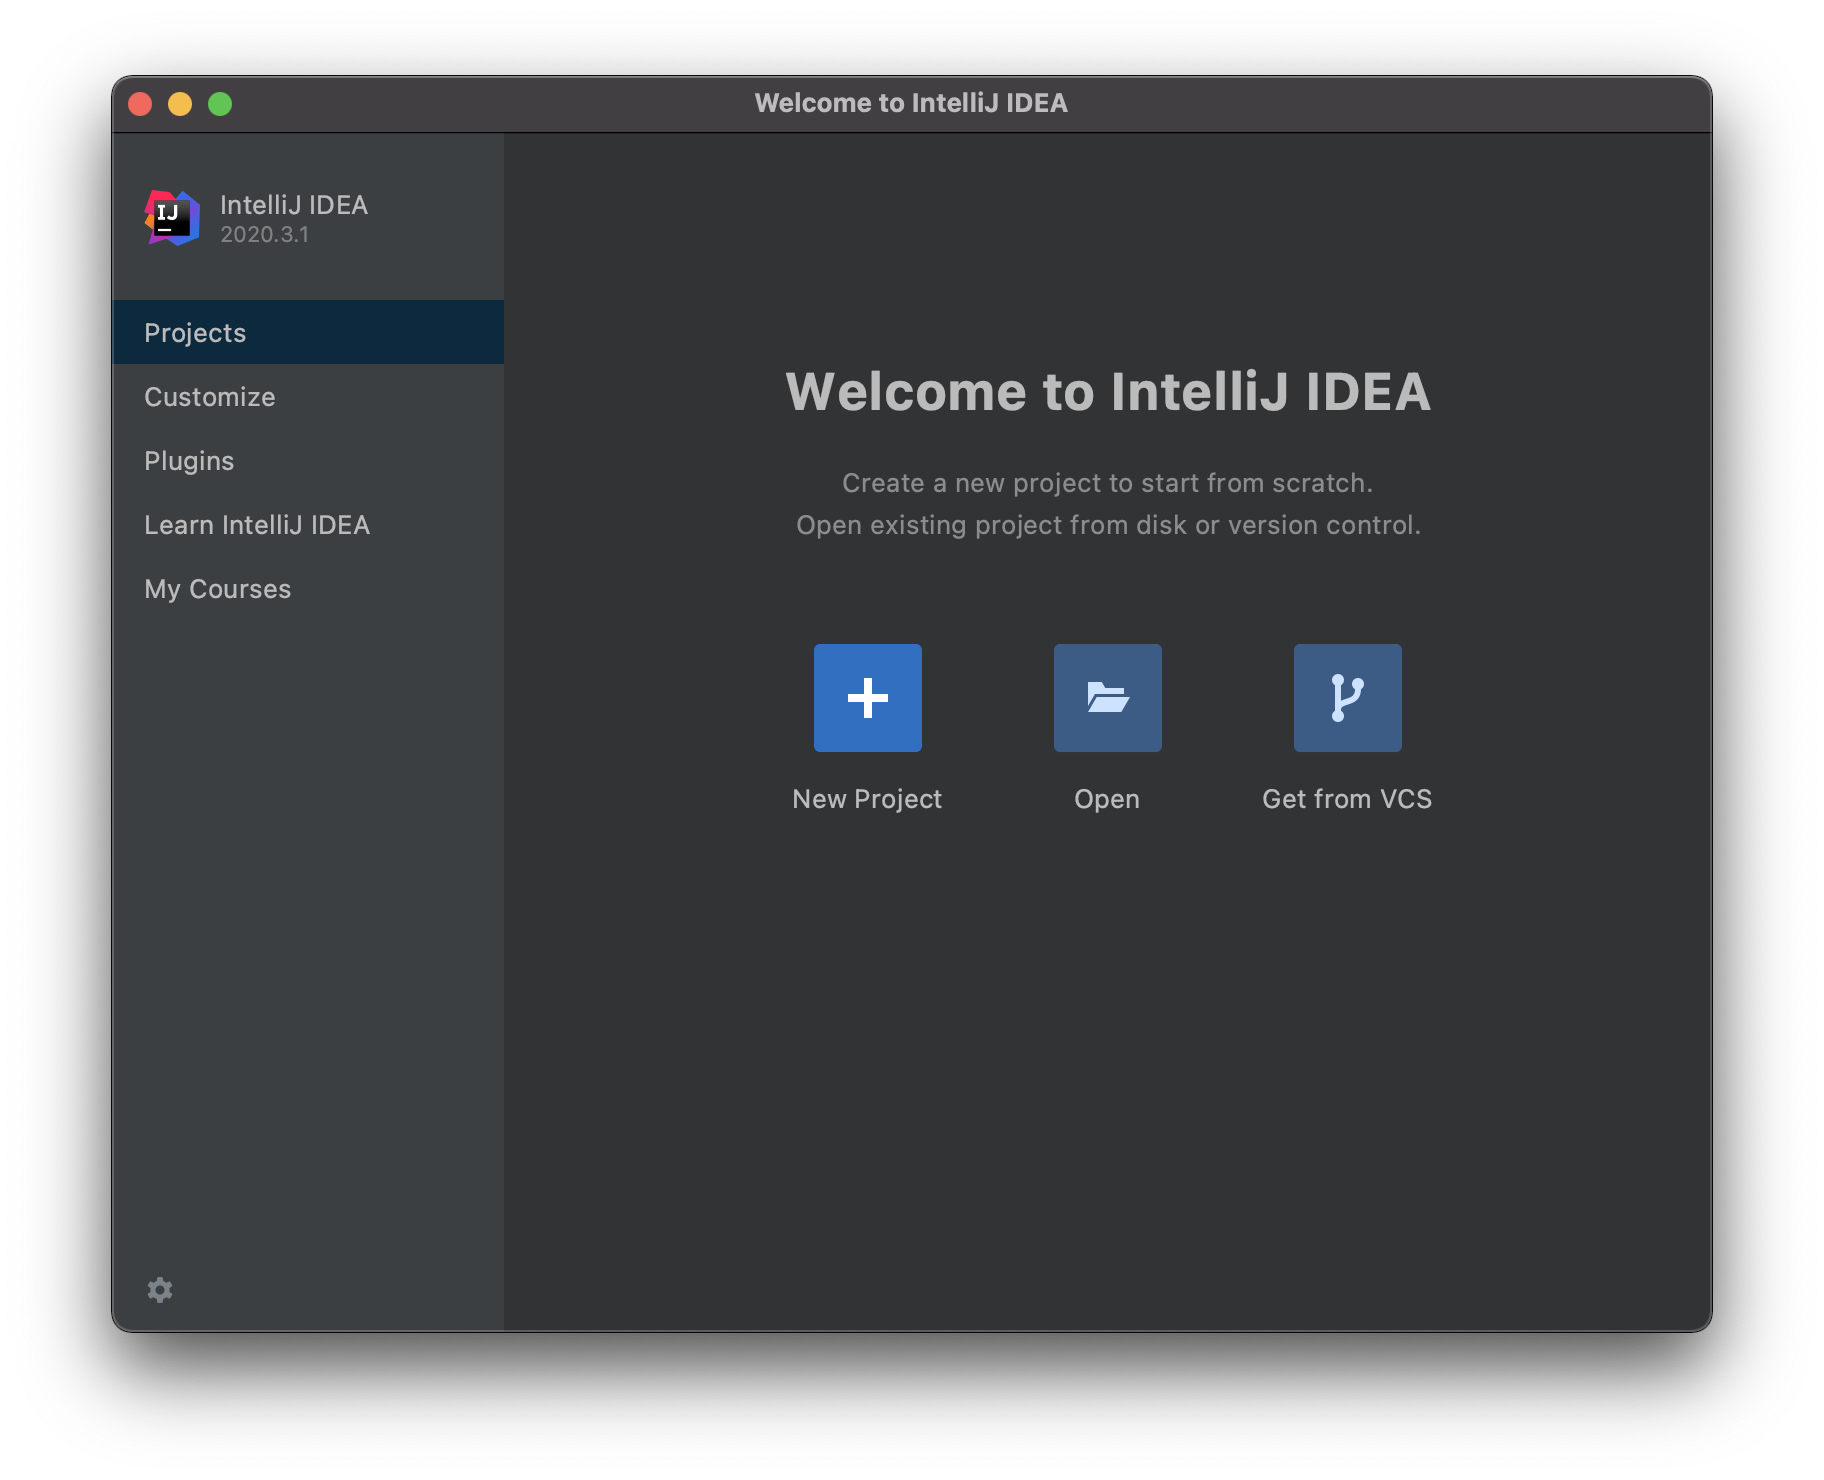 Welcome to IntelliJ IDEA